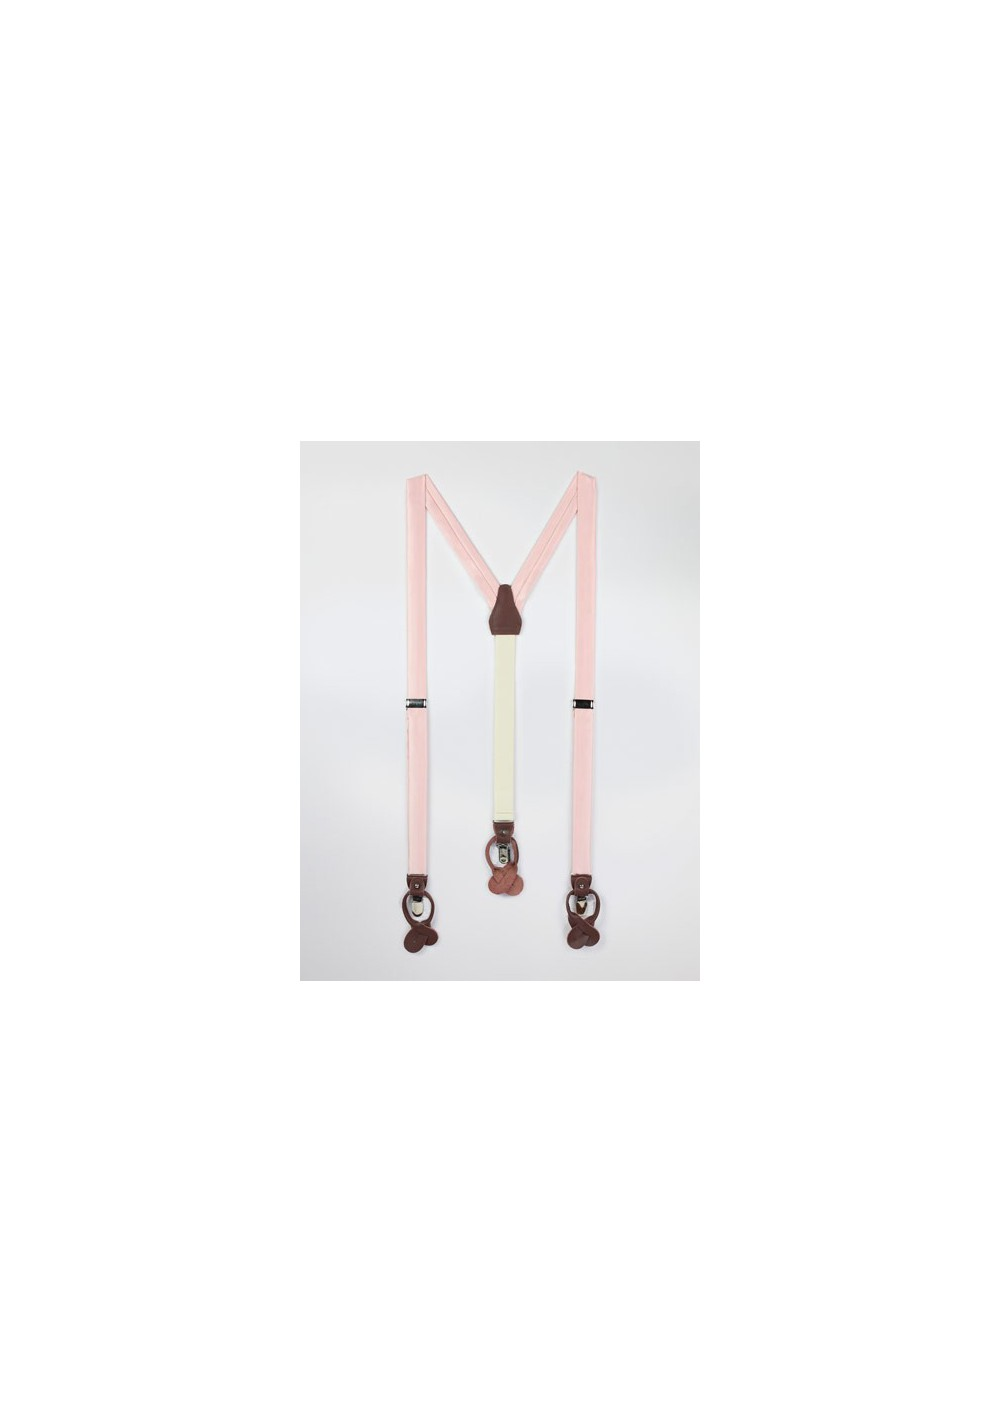 Suspenders in Peach Blush Pink